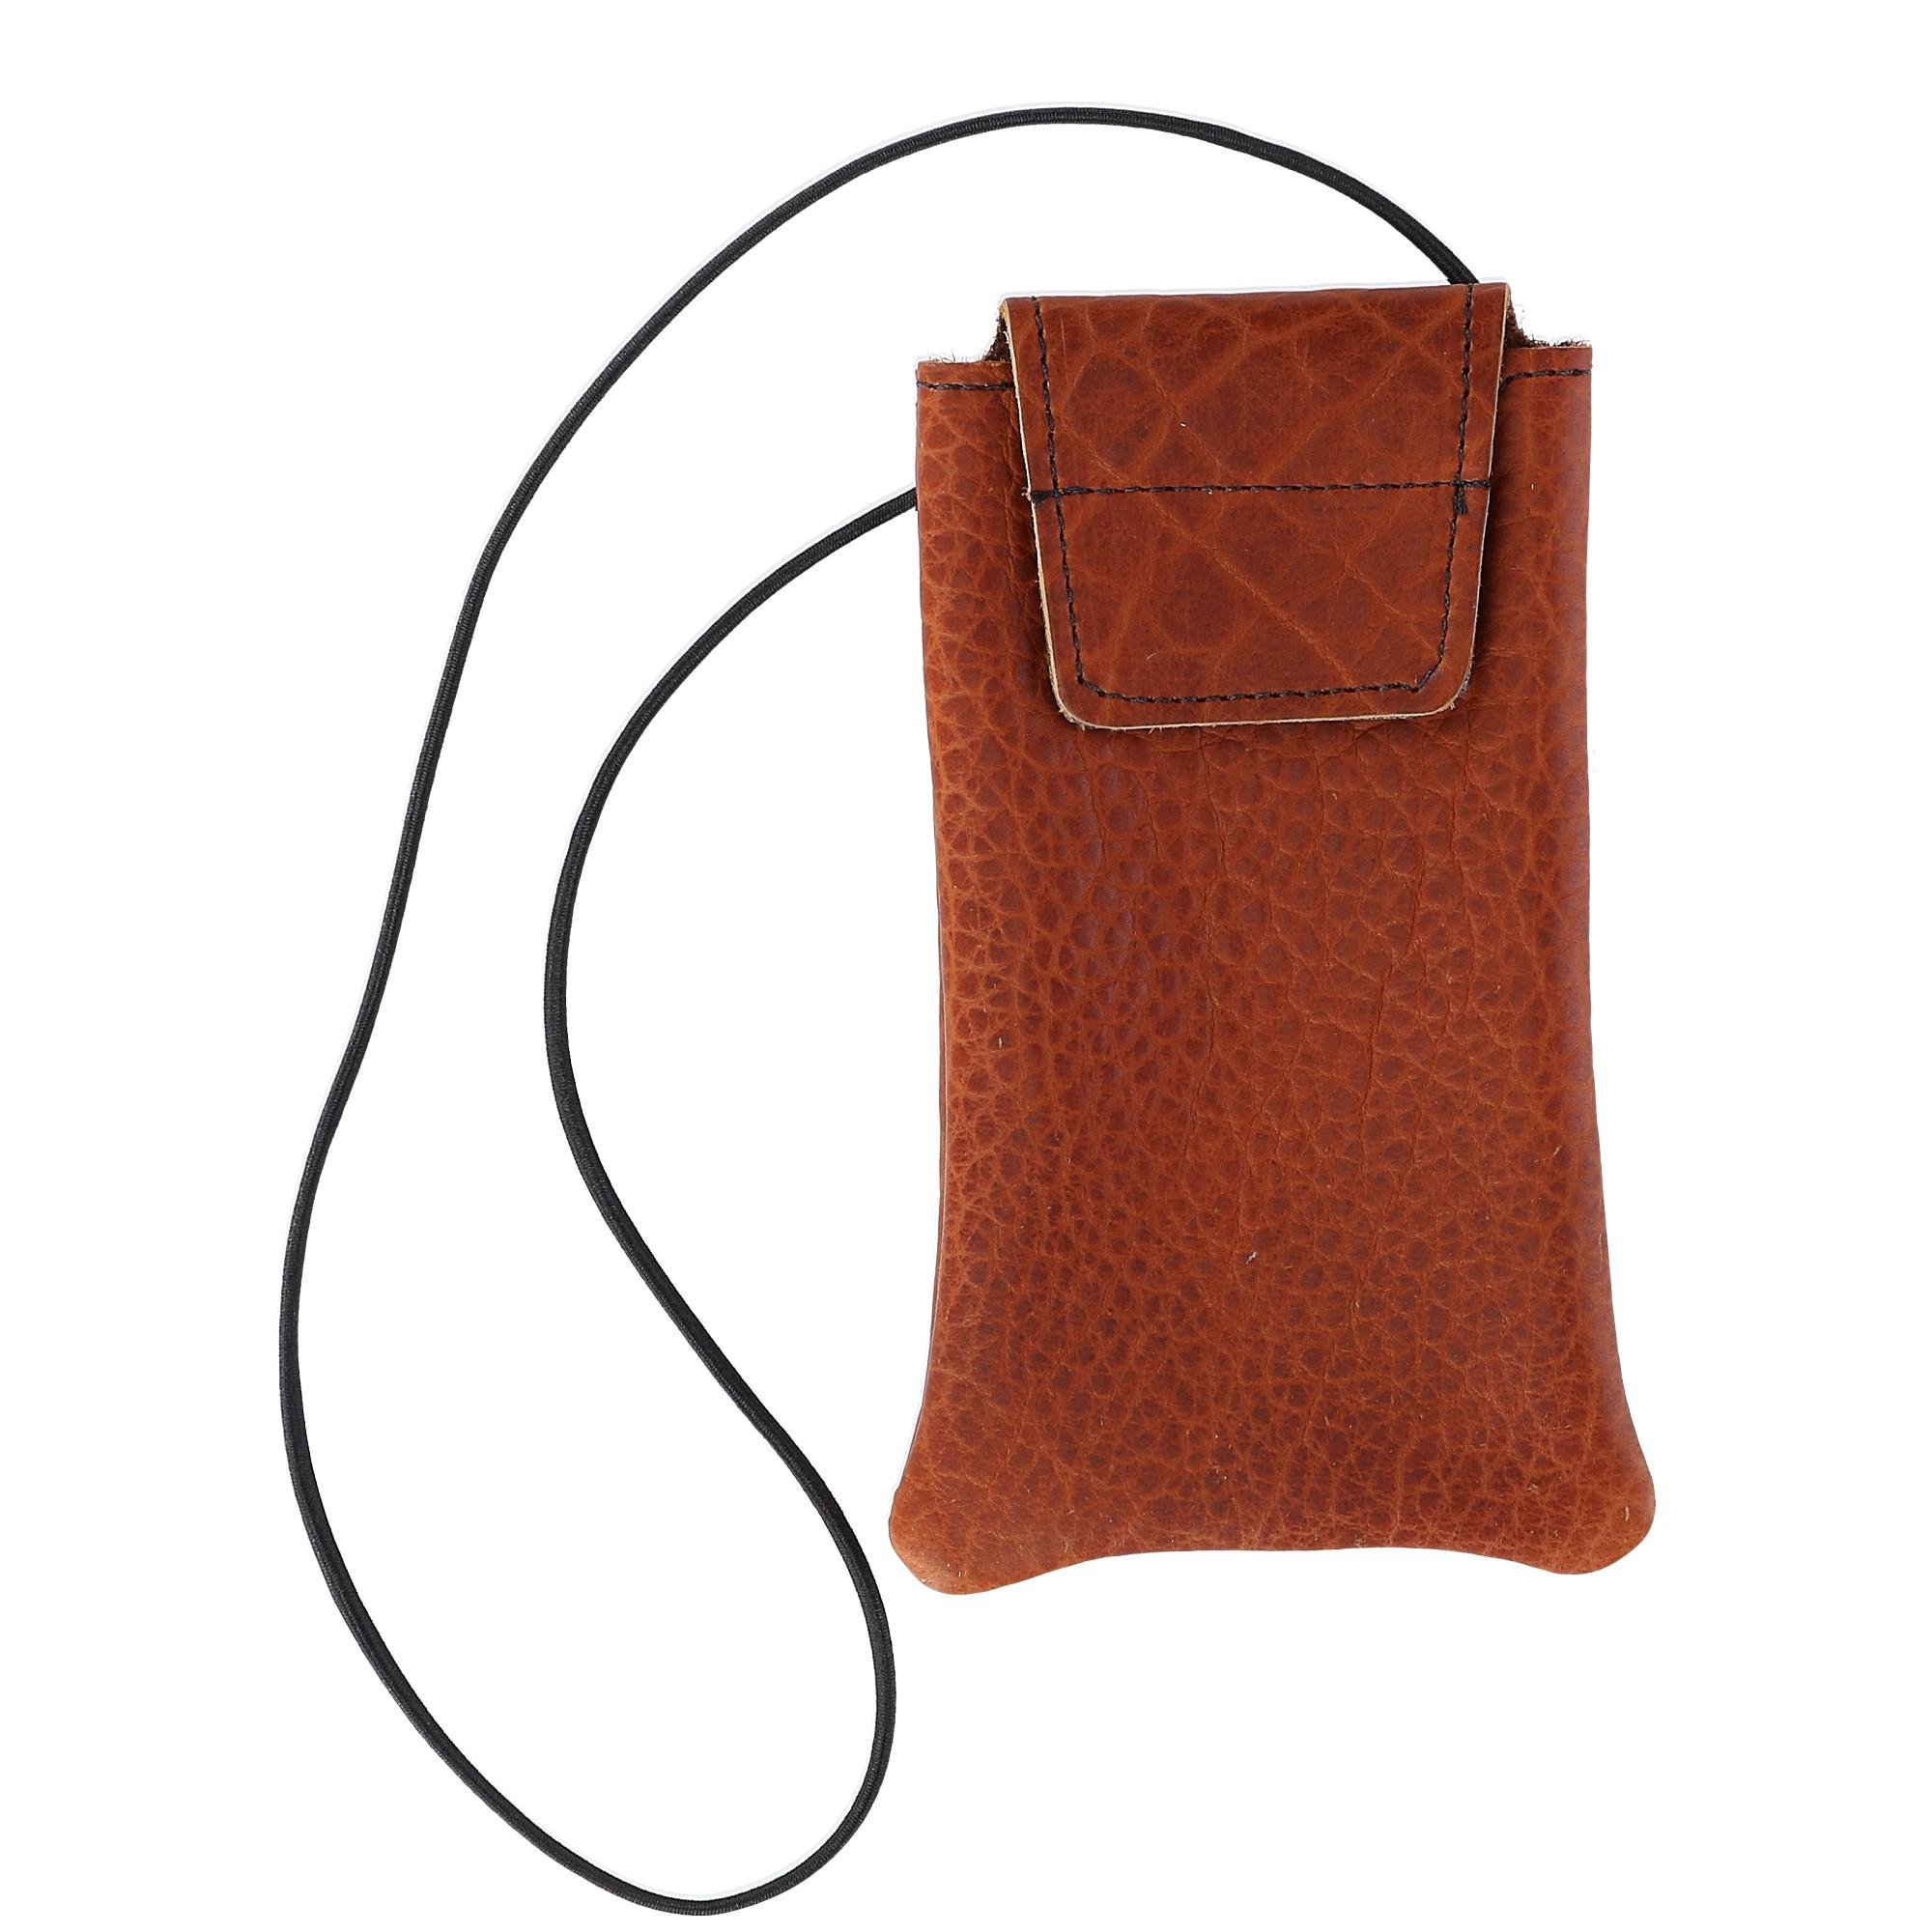 Boston Leather Textured Bison Leather Eyeglass Case with Neck String, Tuscan by Boston Leather